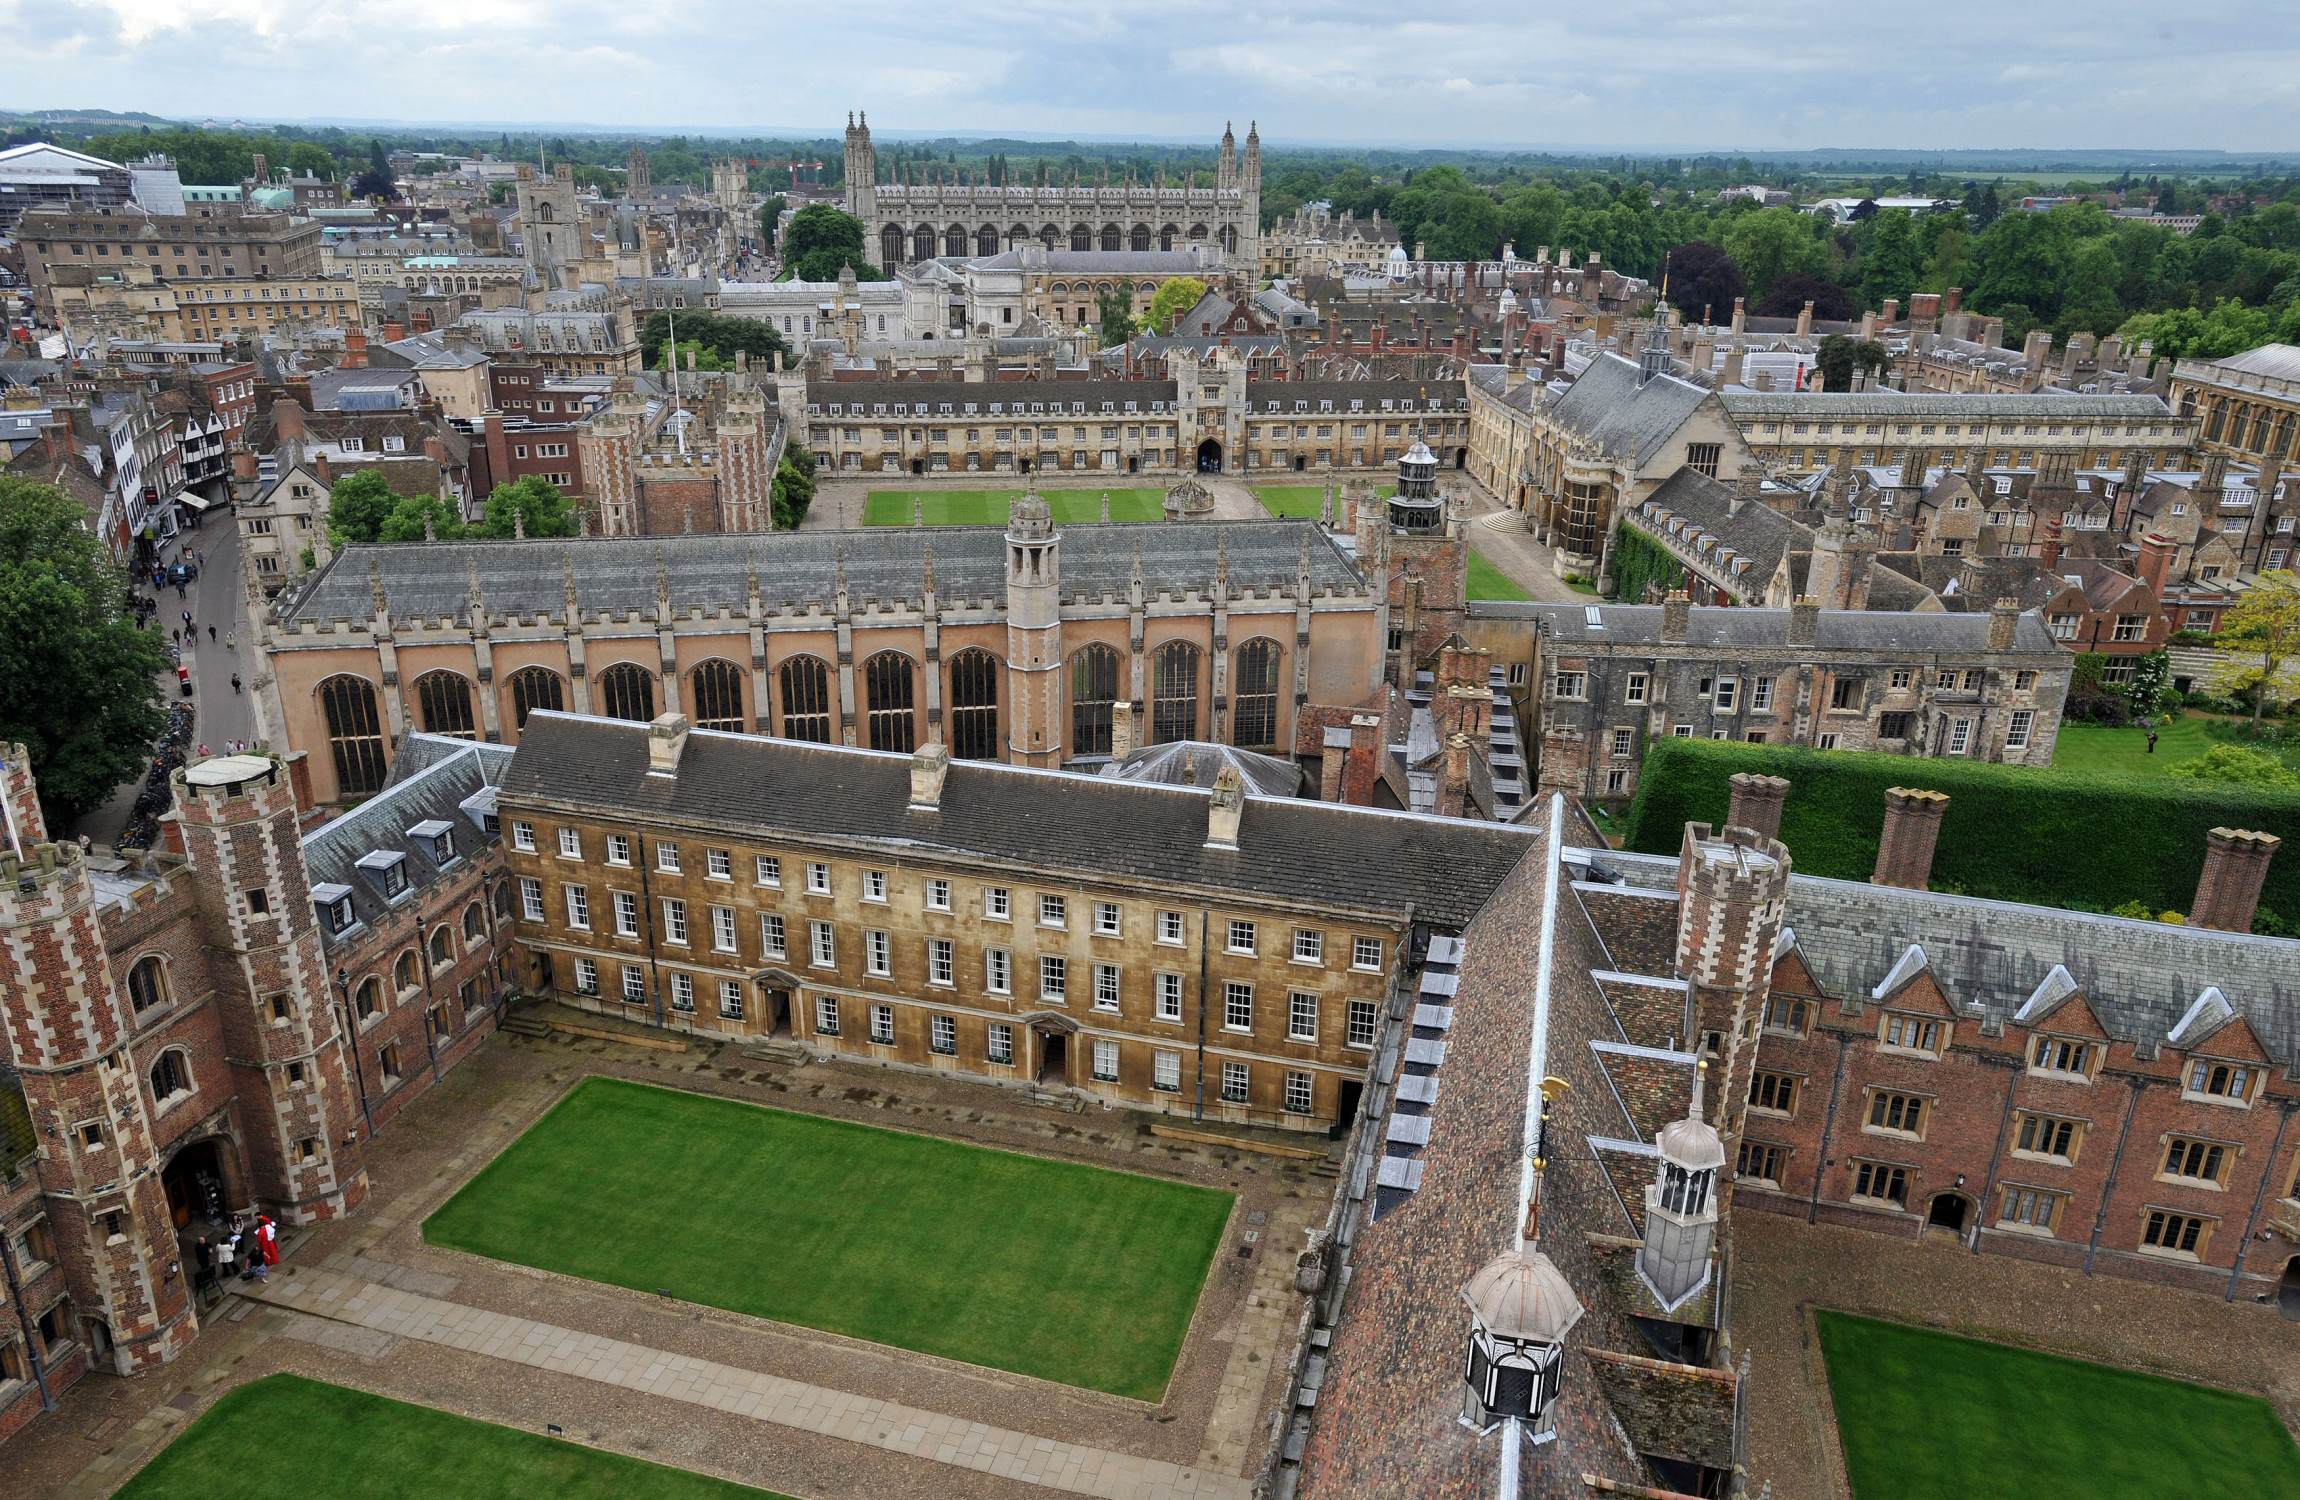 University of Cambridge reveals 'significant' sexual misconduct problem